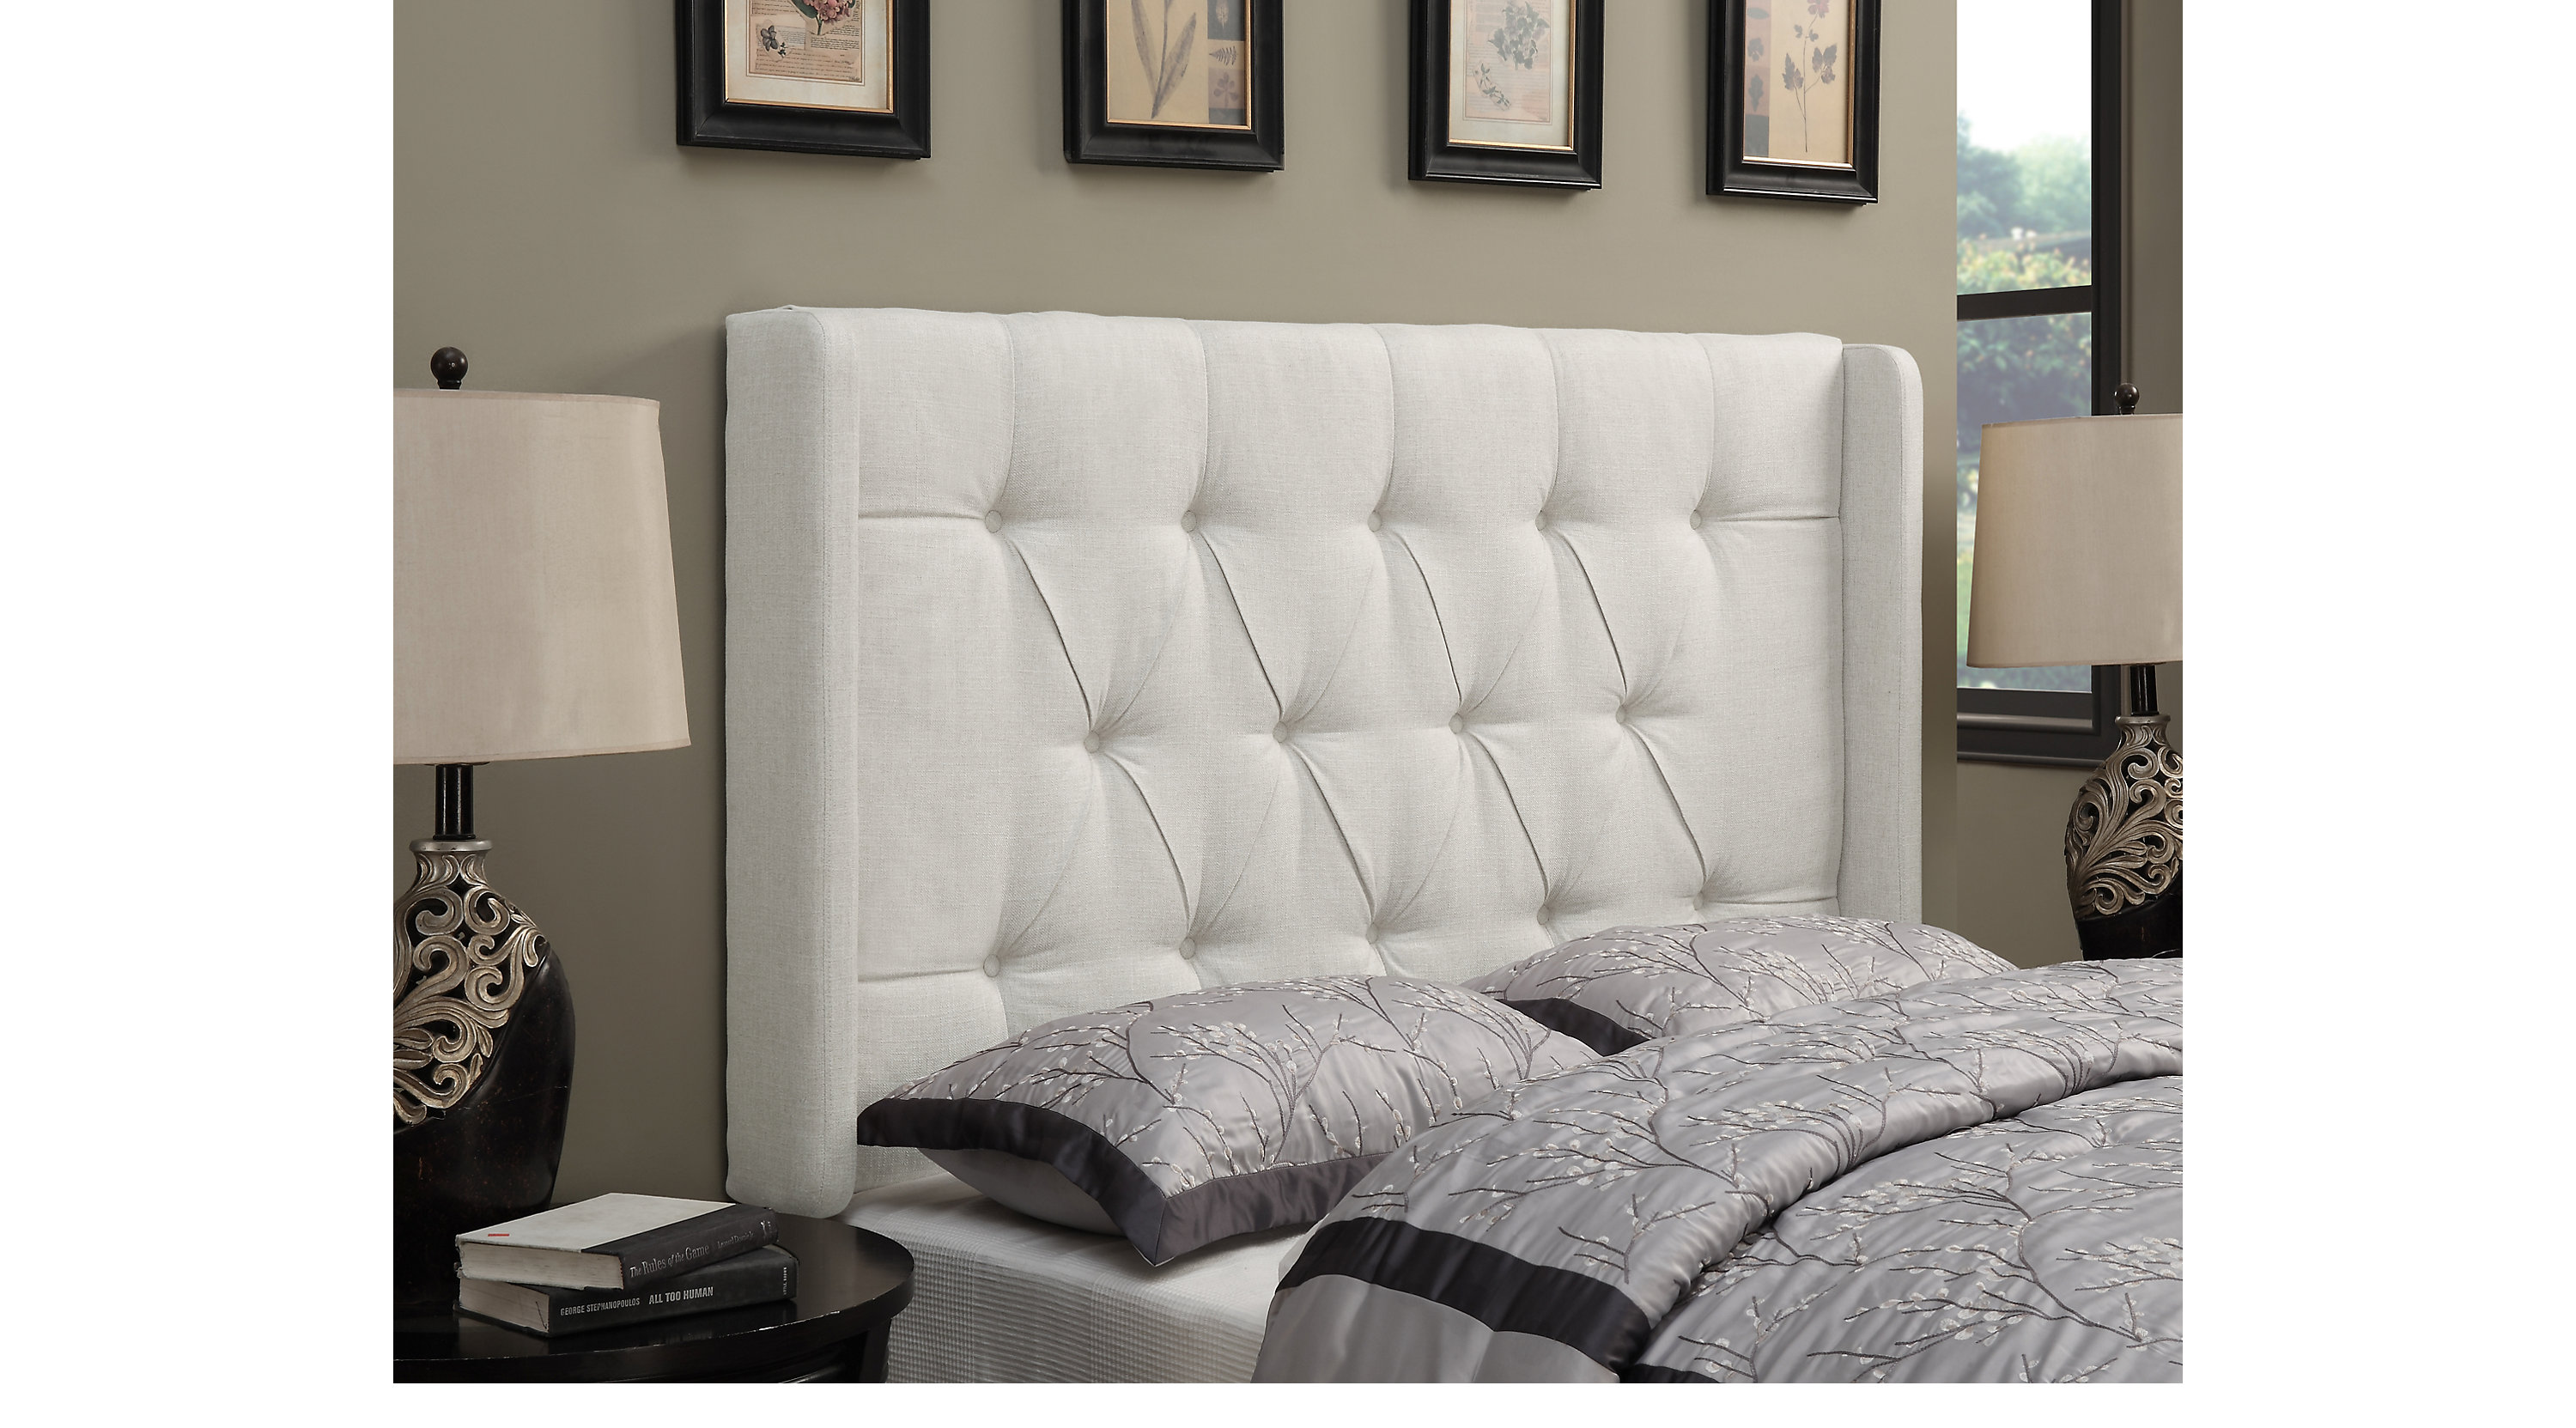 skyline reviews headboard pdx slipcovered furniture tufted upholstered wayfair wingback